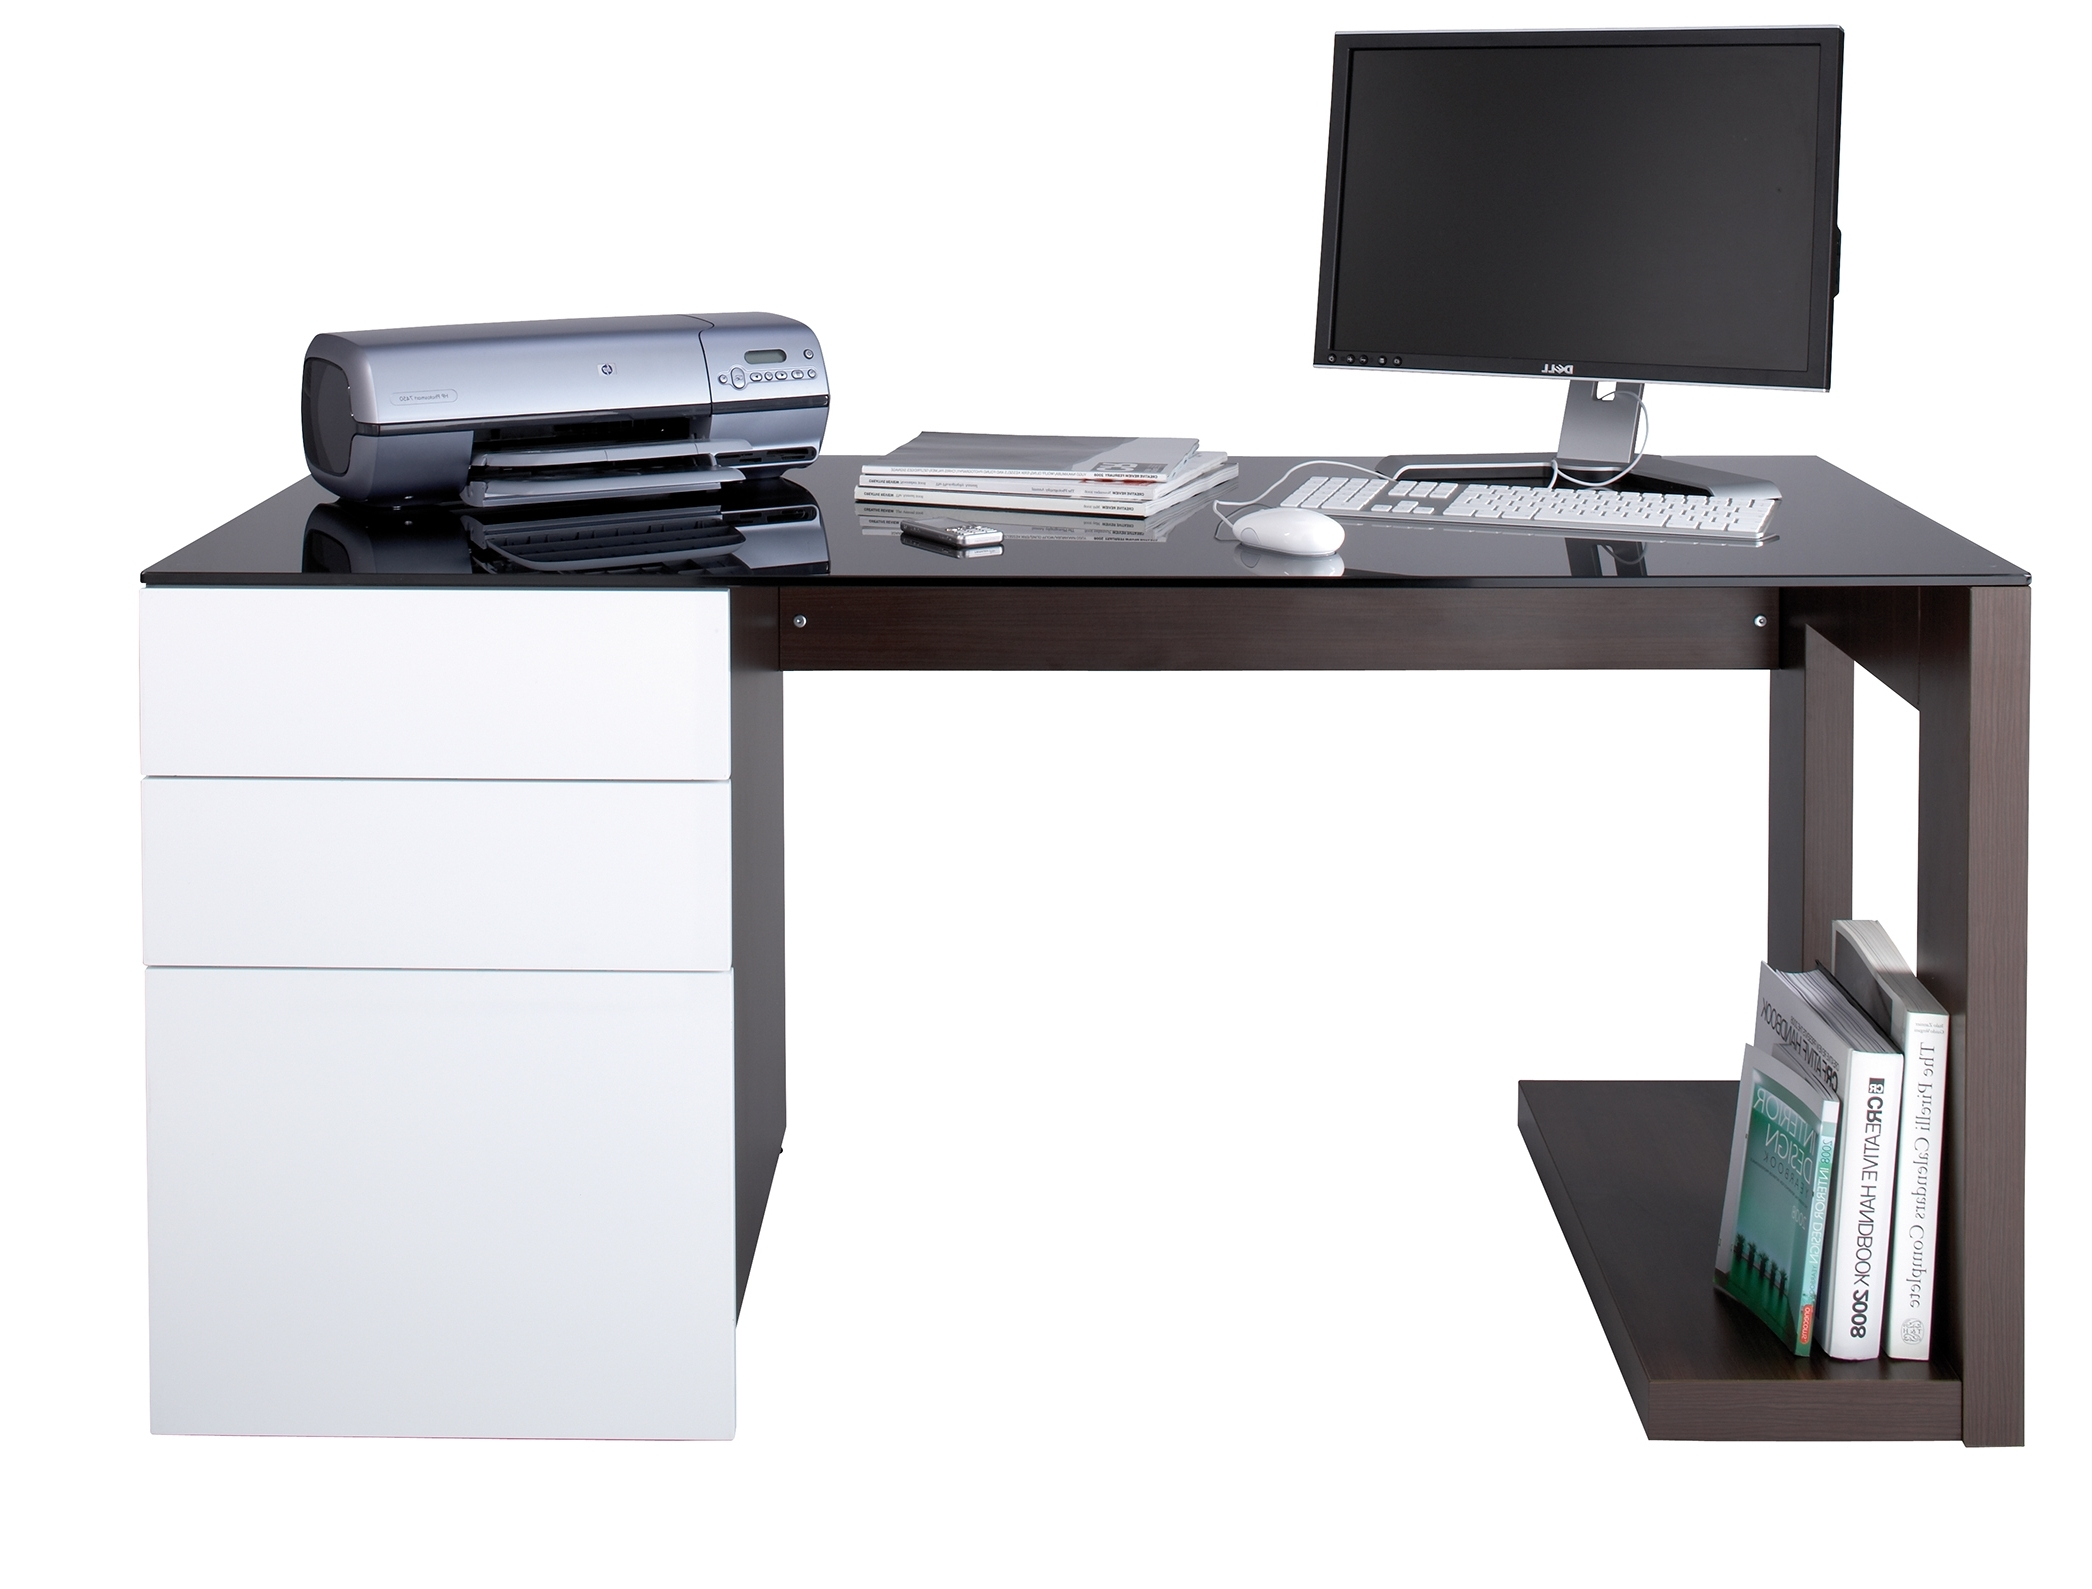 Awesome Simple Computer Desks Ideas – Liltigertoo Intended For Latest Computer Desks And Workstations (View 3 of 20)